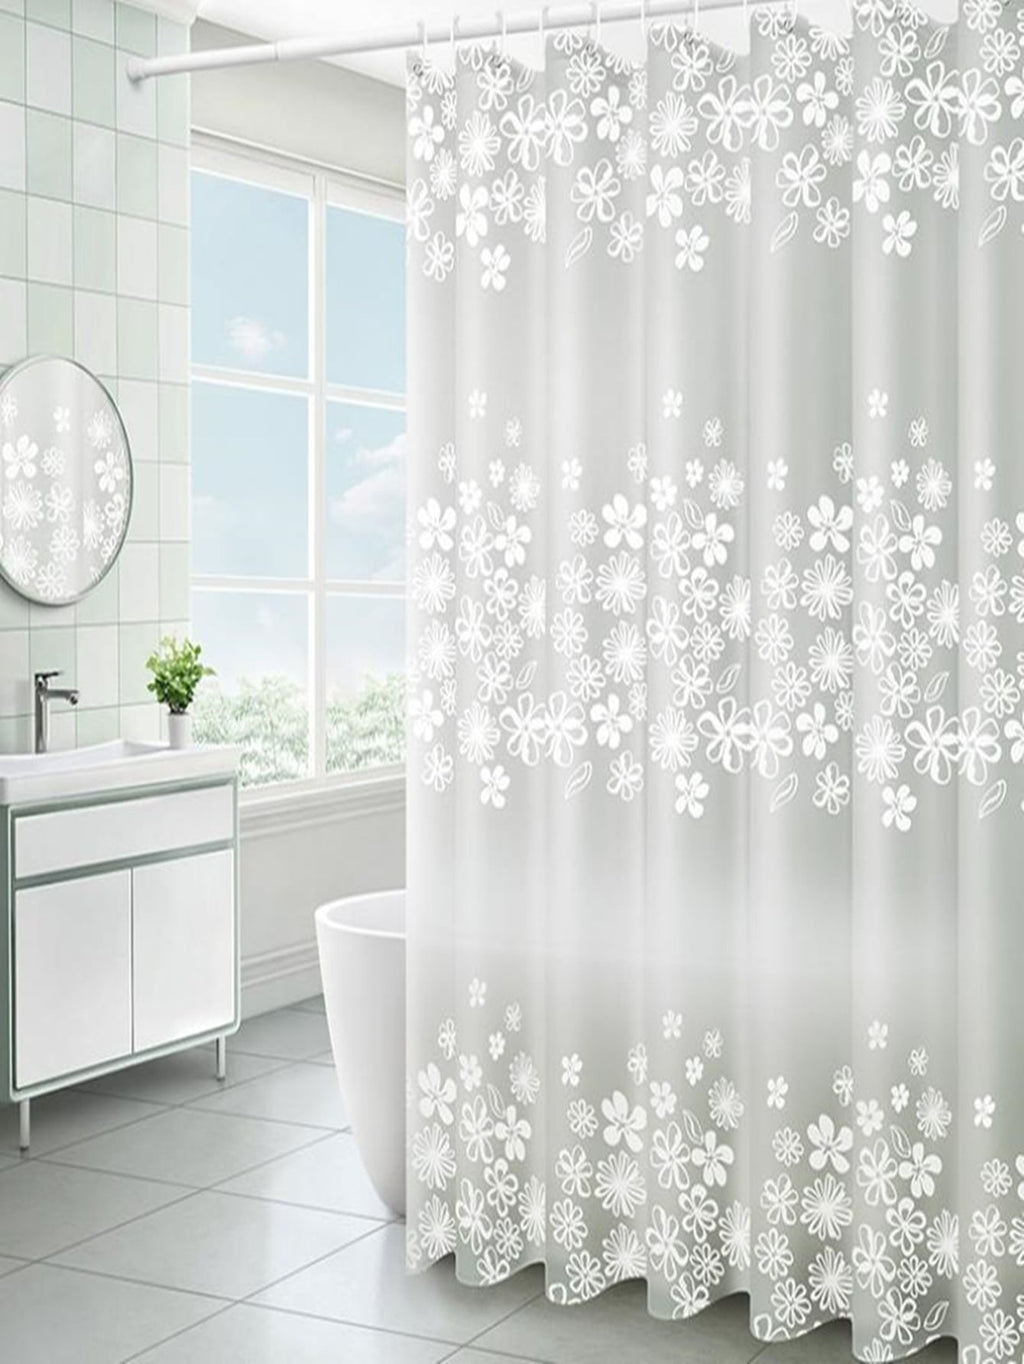 Flower Print Shower Curtain With 12pcs Hook